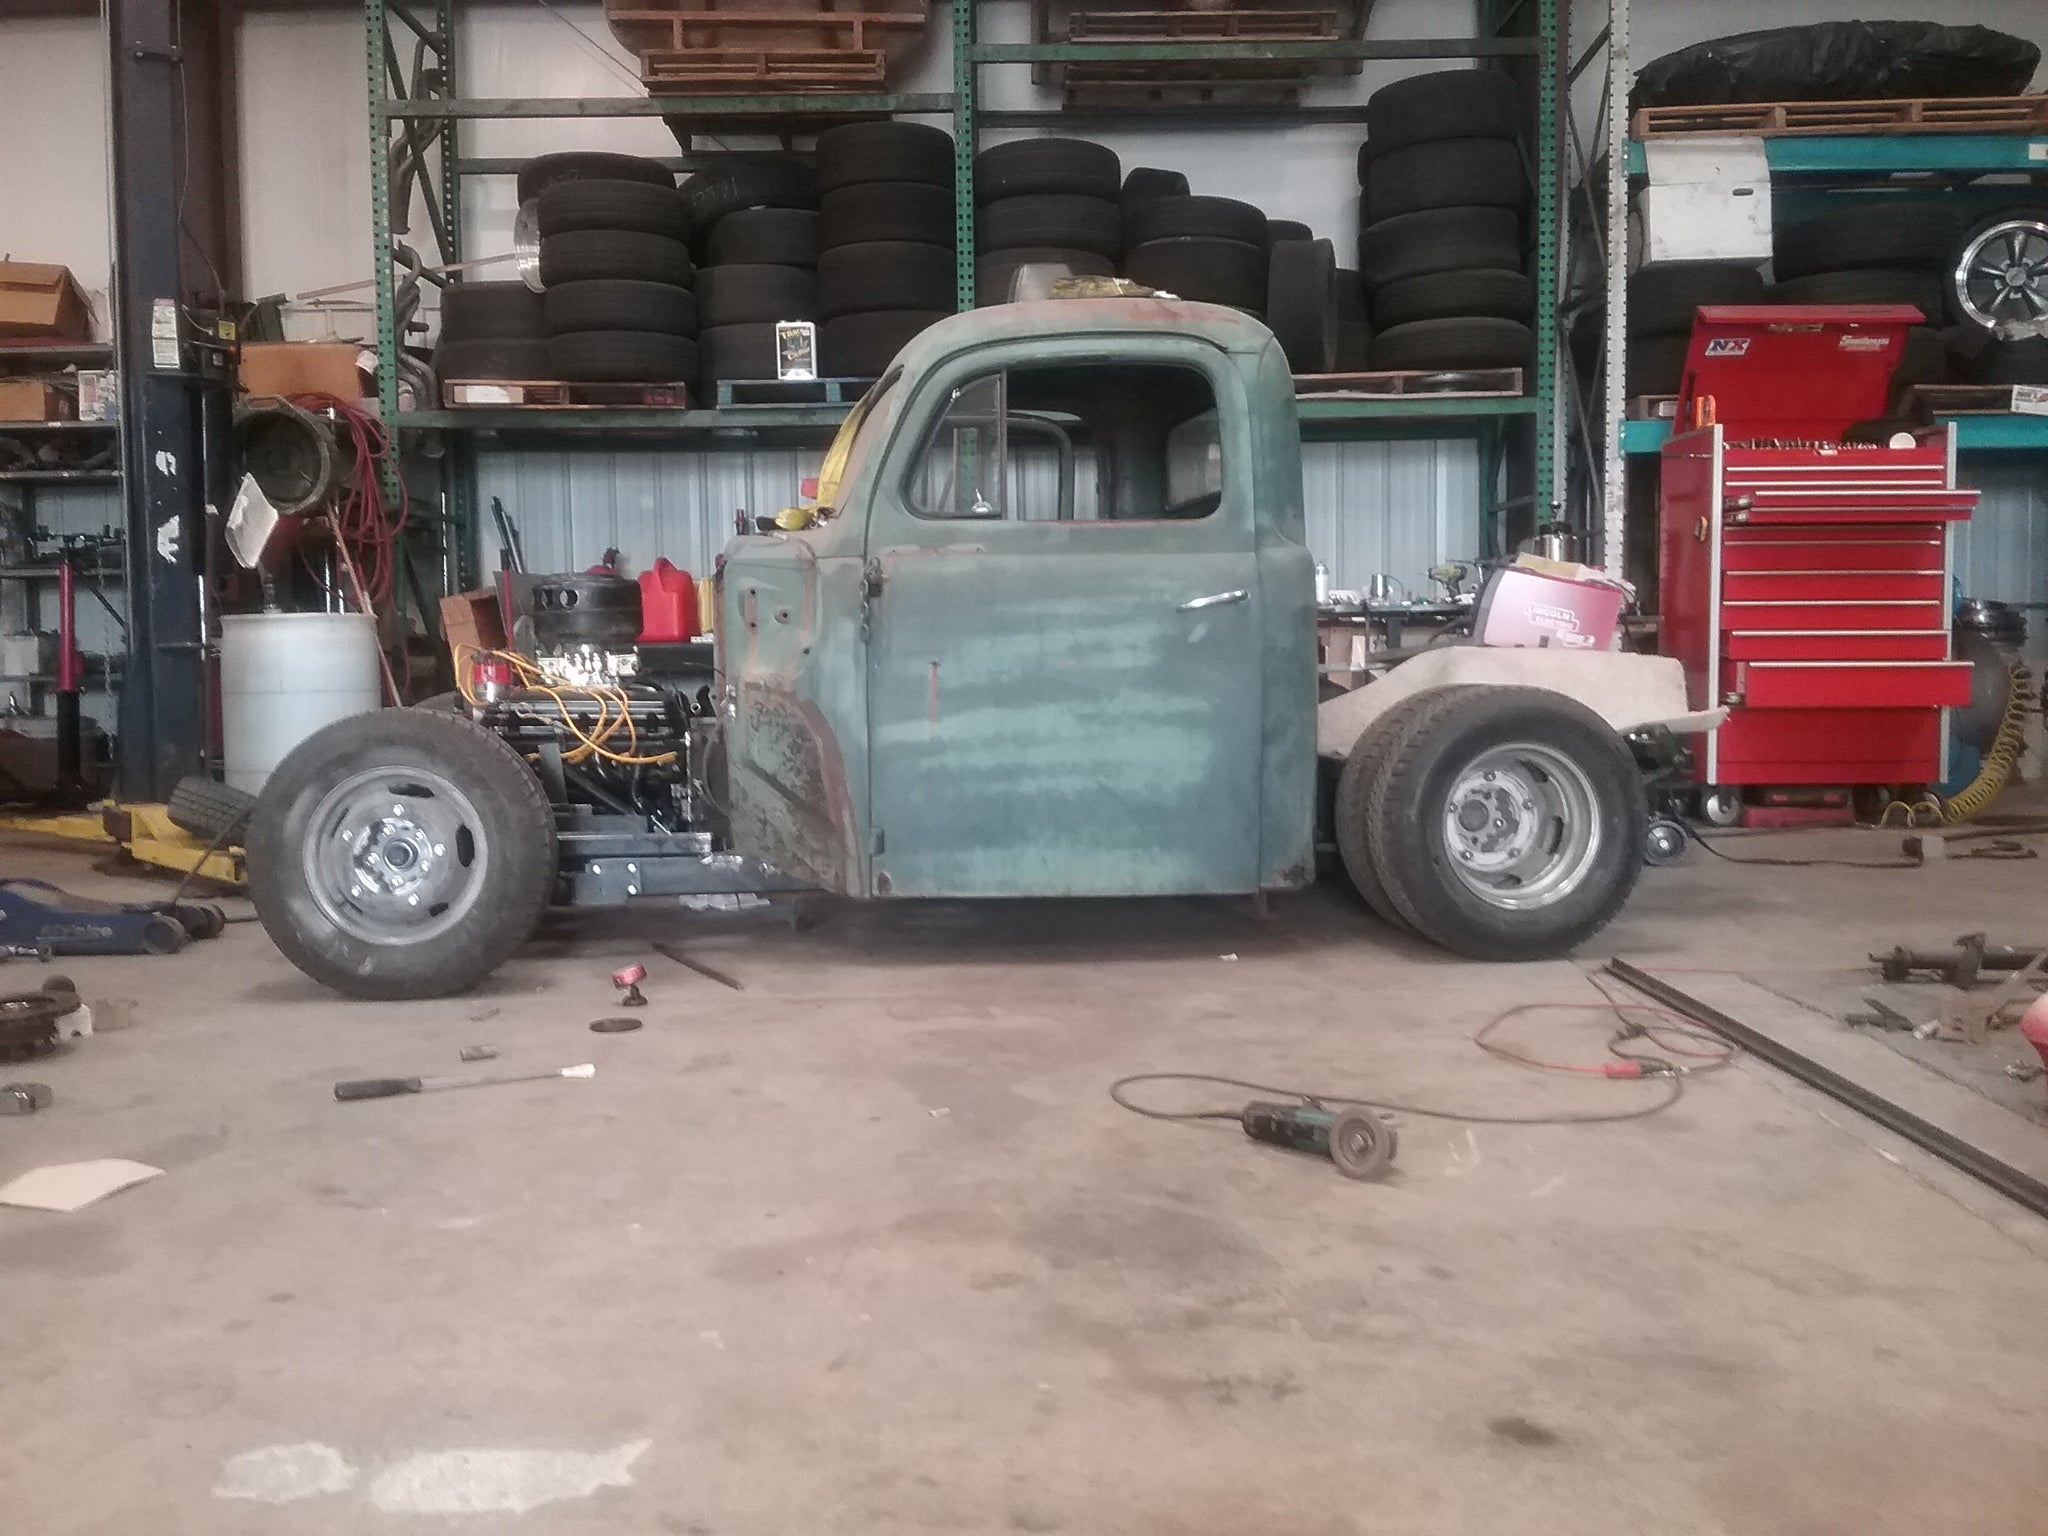 1948 Ford Cab - 1936 Chevy Front End